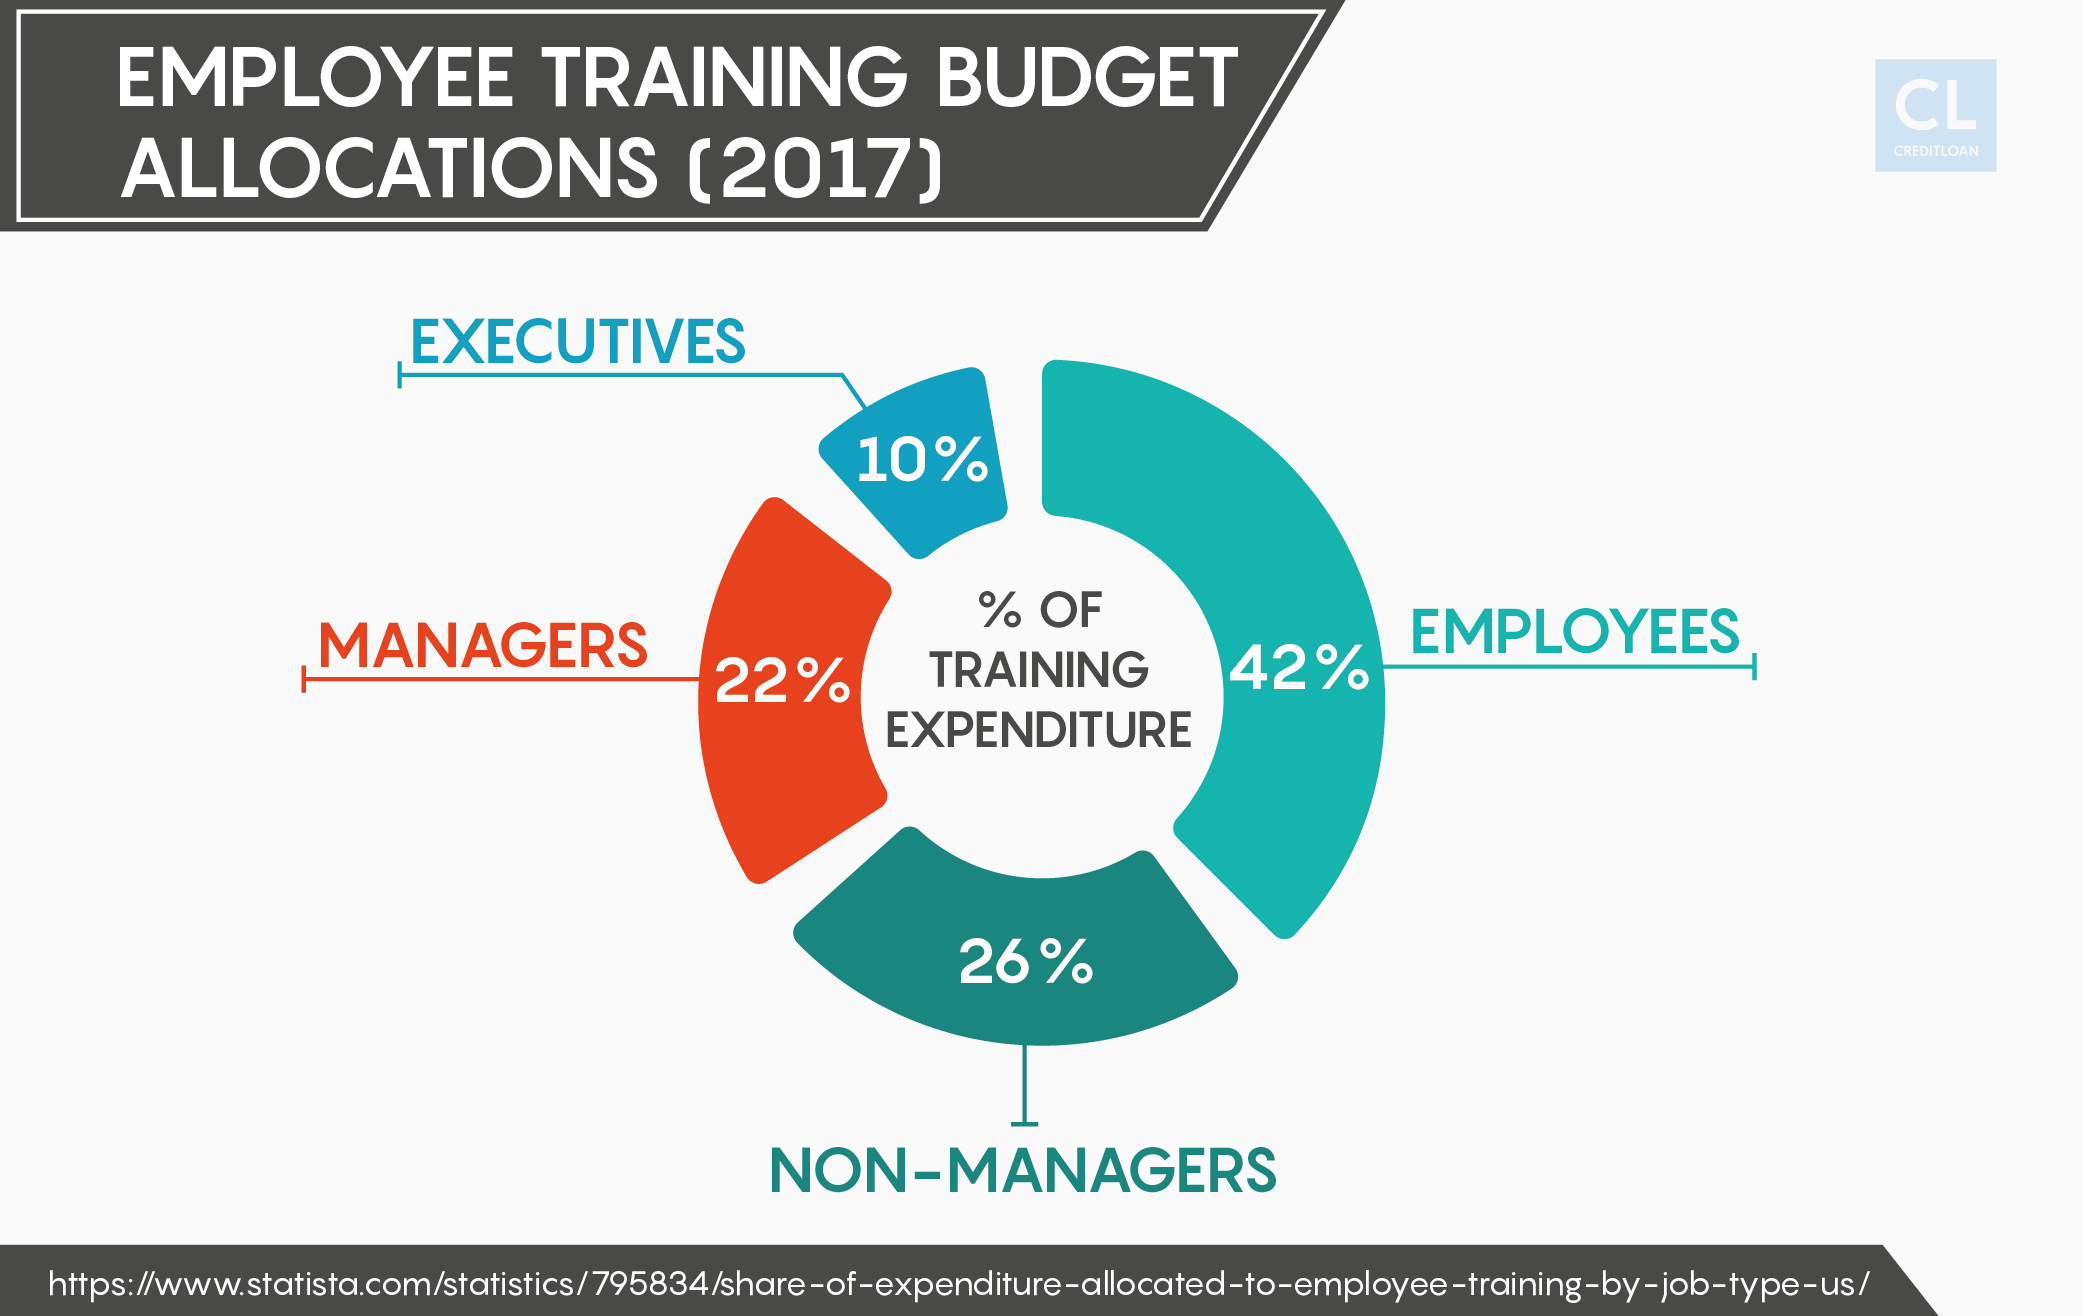 2017 Employee Training Budget Allocations